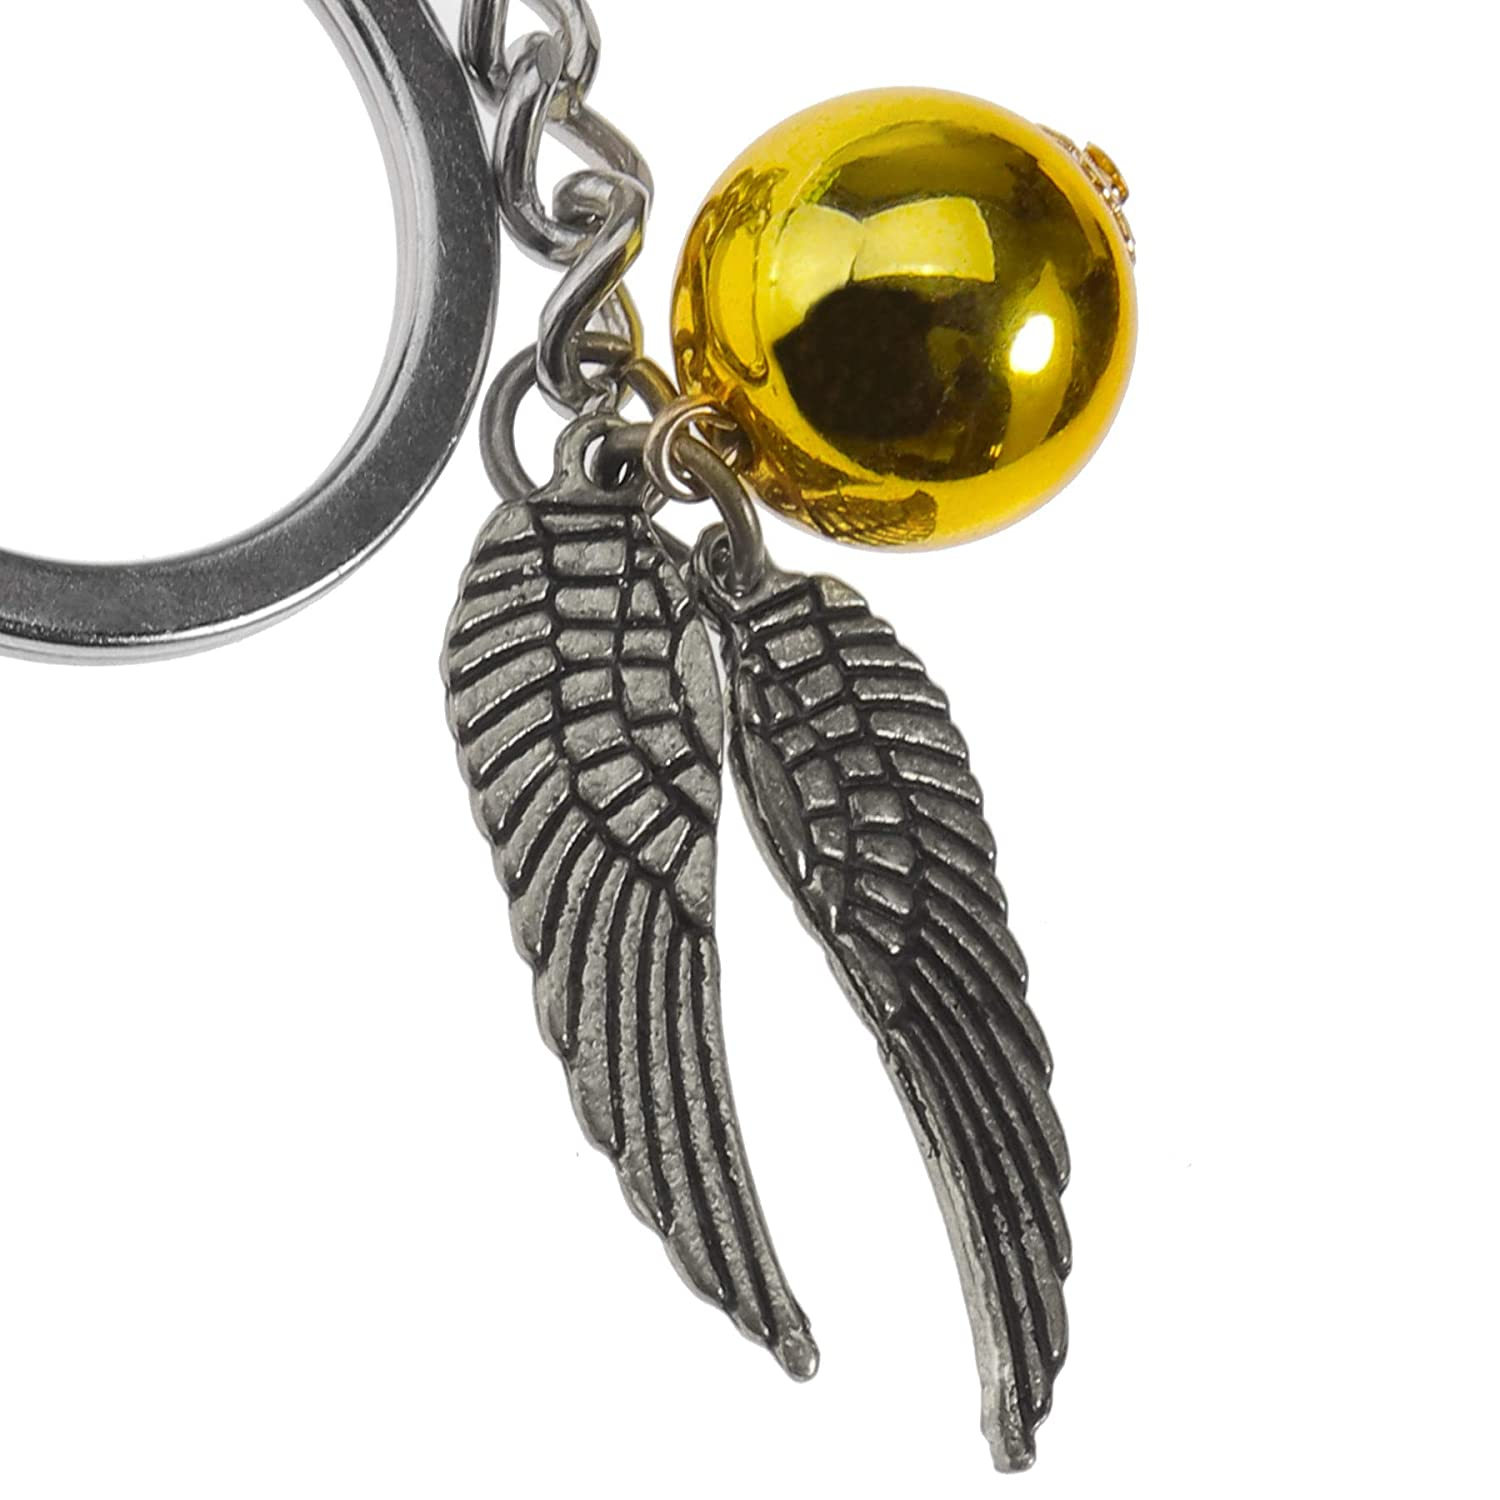 ENET Llavero Harry Potter Golden Snitch Puerta Llaves estaño ...